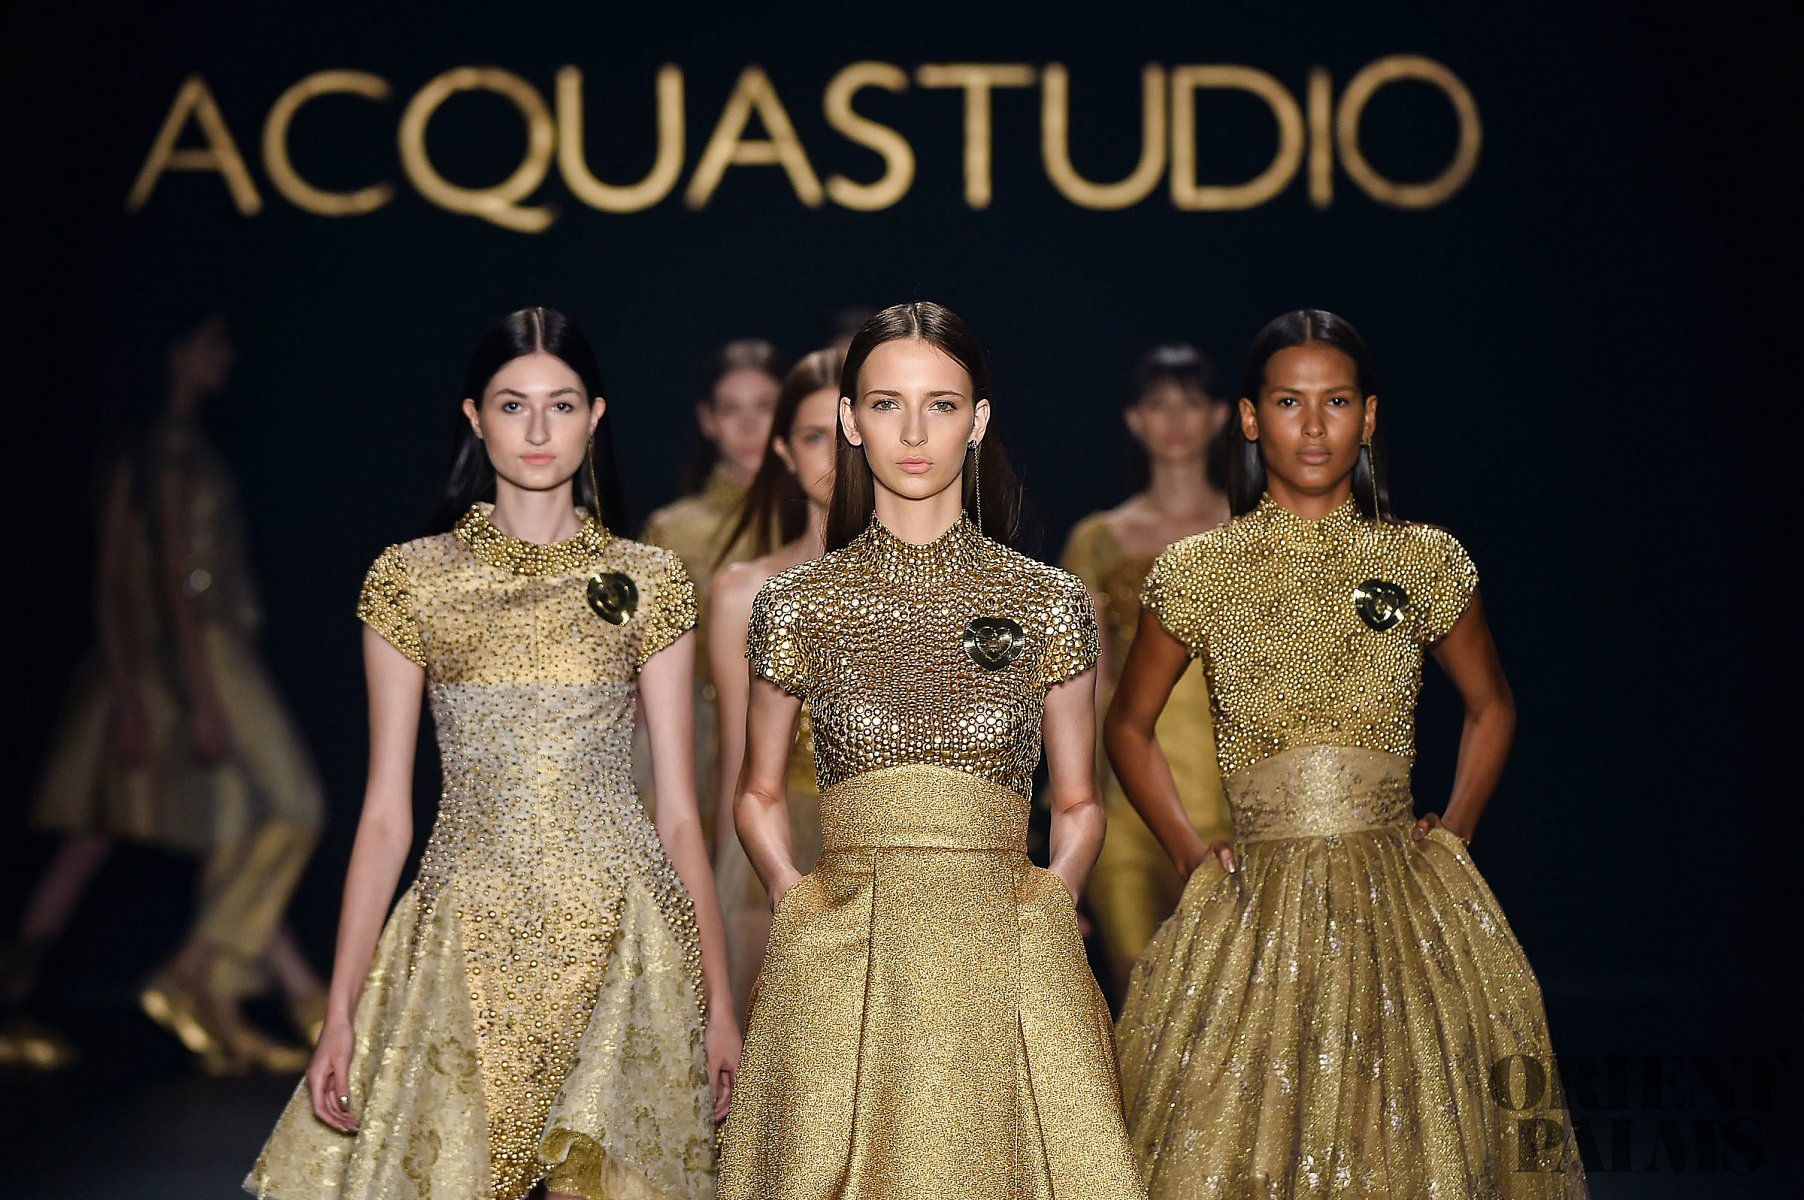 Acquastudio Herfst/Winter 2015-2016 - Confectie - 29